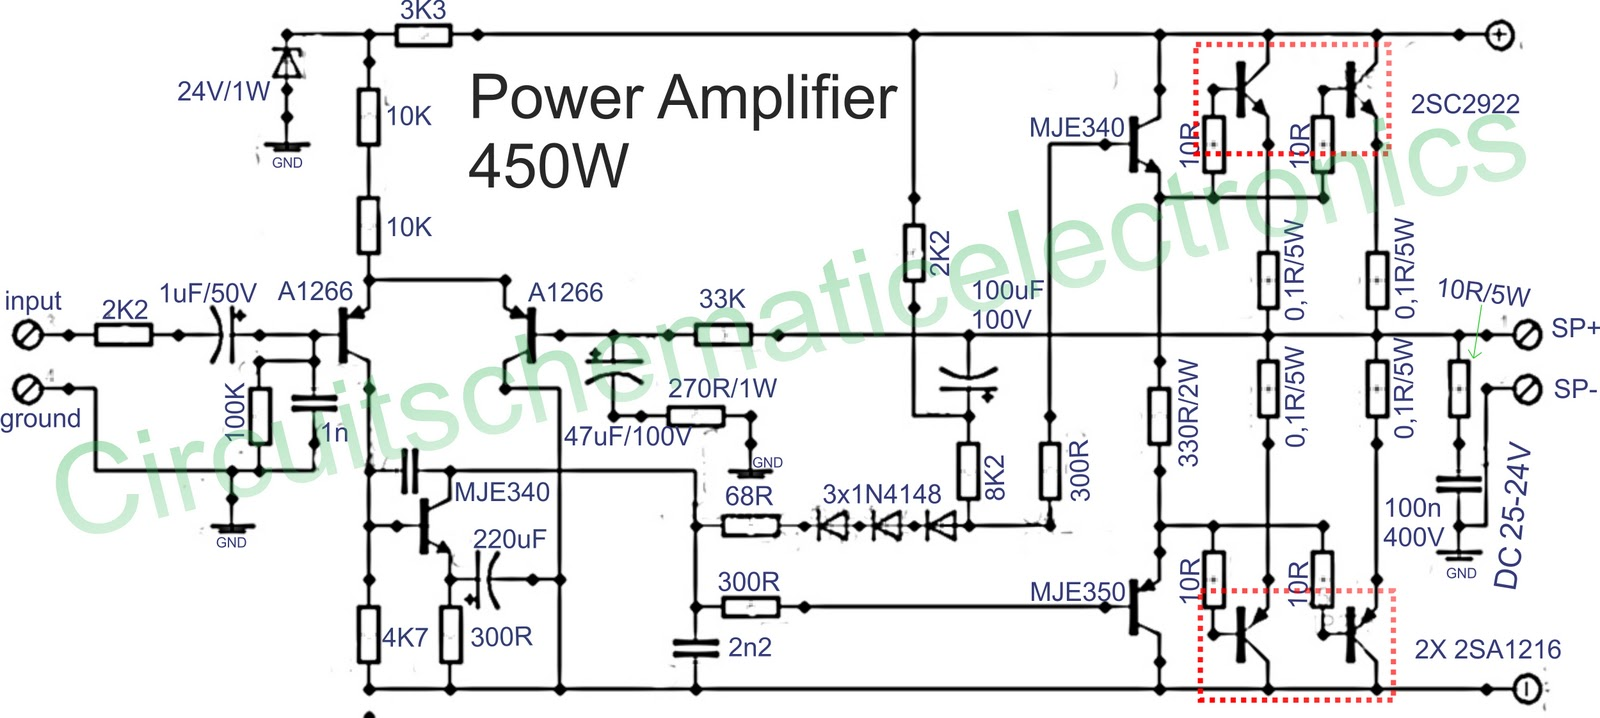 Transistor 5000w Audio Amplifier Circuit Diagram - 450w Amplifier Schematics  - Transistor 5000w Audio Amplifier Circuit